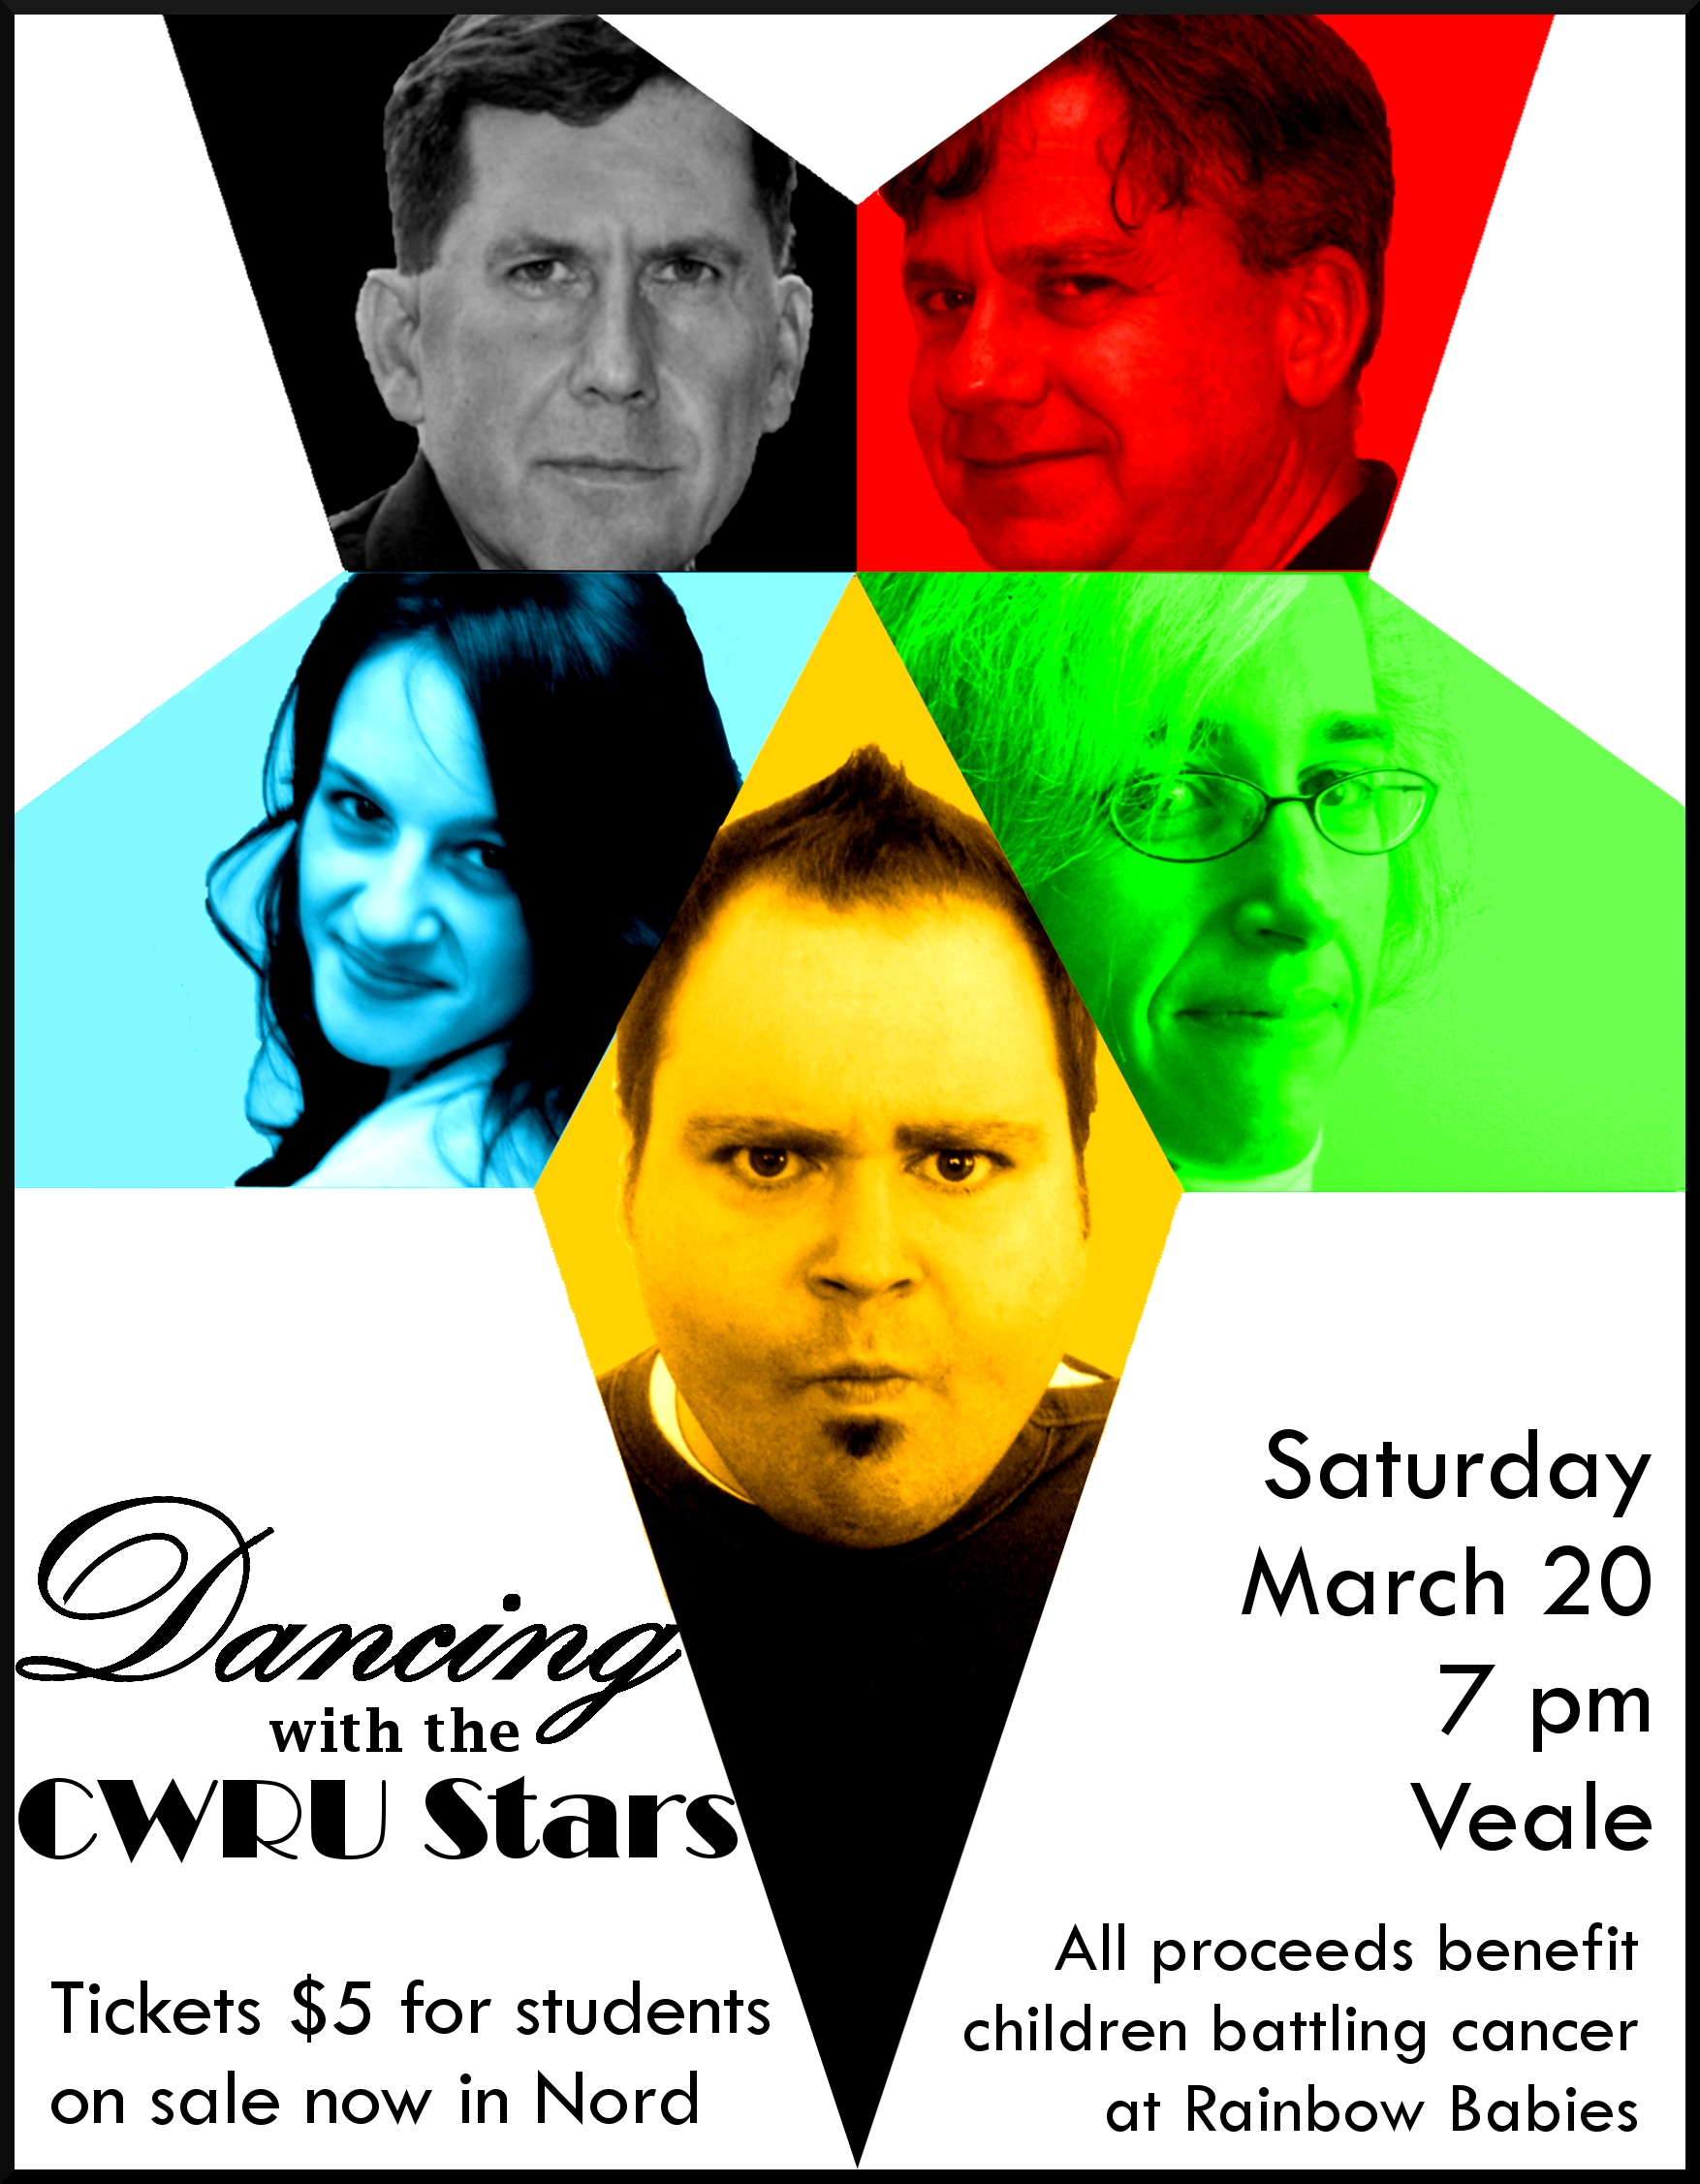 dance marathon at case western reserve university dancing with the CWRU stars trek poster